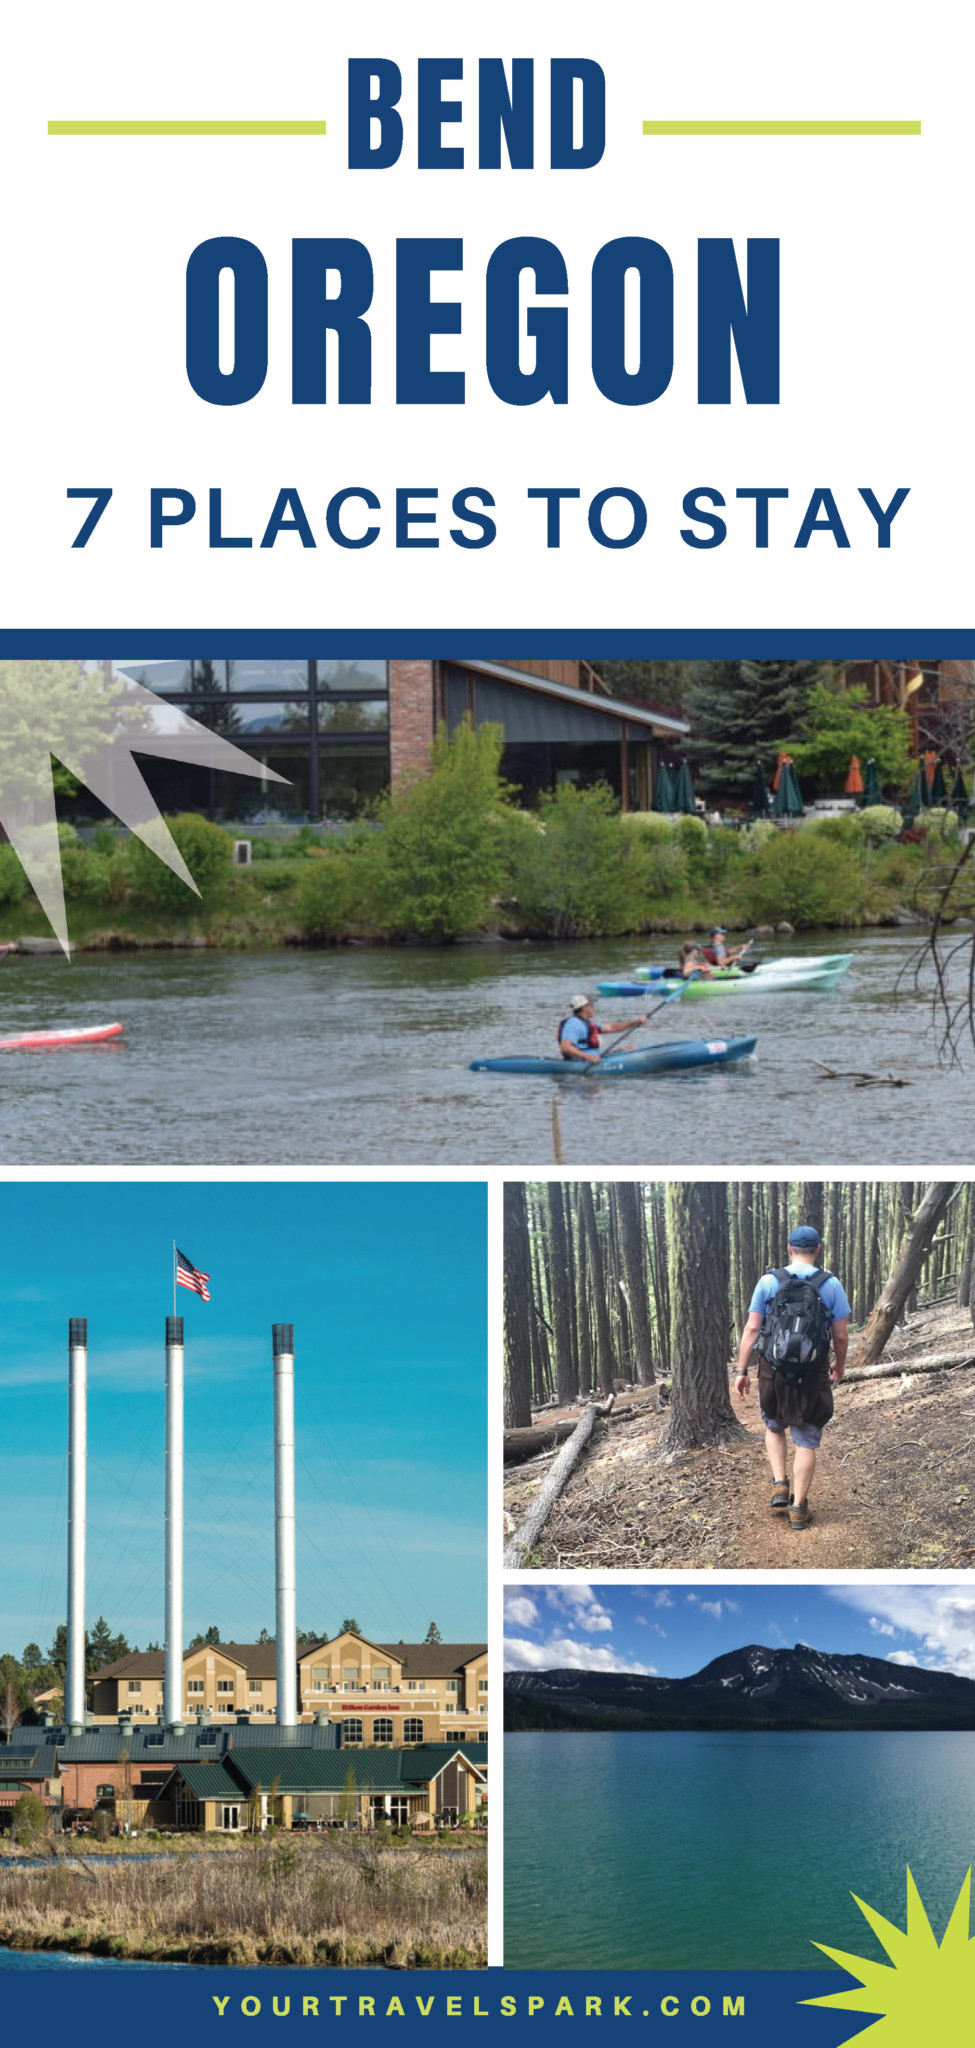 Visiting Bend, Oregon means hiking, camping, skiing, breweries, and more! Here are some things to do and places to stay in Bend, Oregon. #bendoregon #bend #oregon #centraloregon #thingstodo #breweries #hiking #camping #skiing #mountbachelor #mtbachelor #southsister #threesisters #trails #outdoors